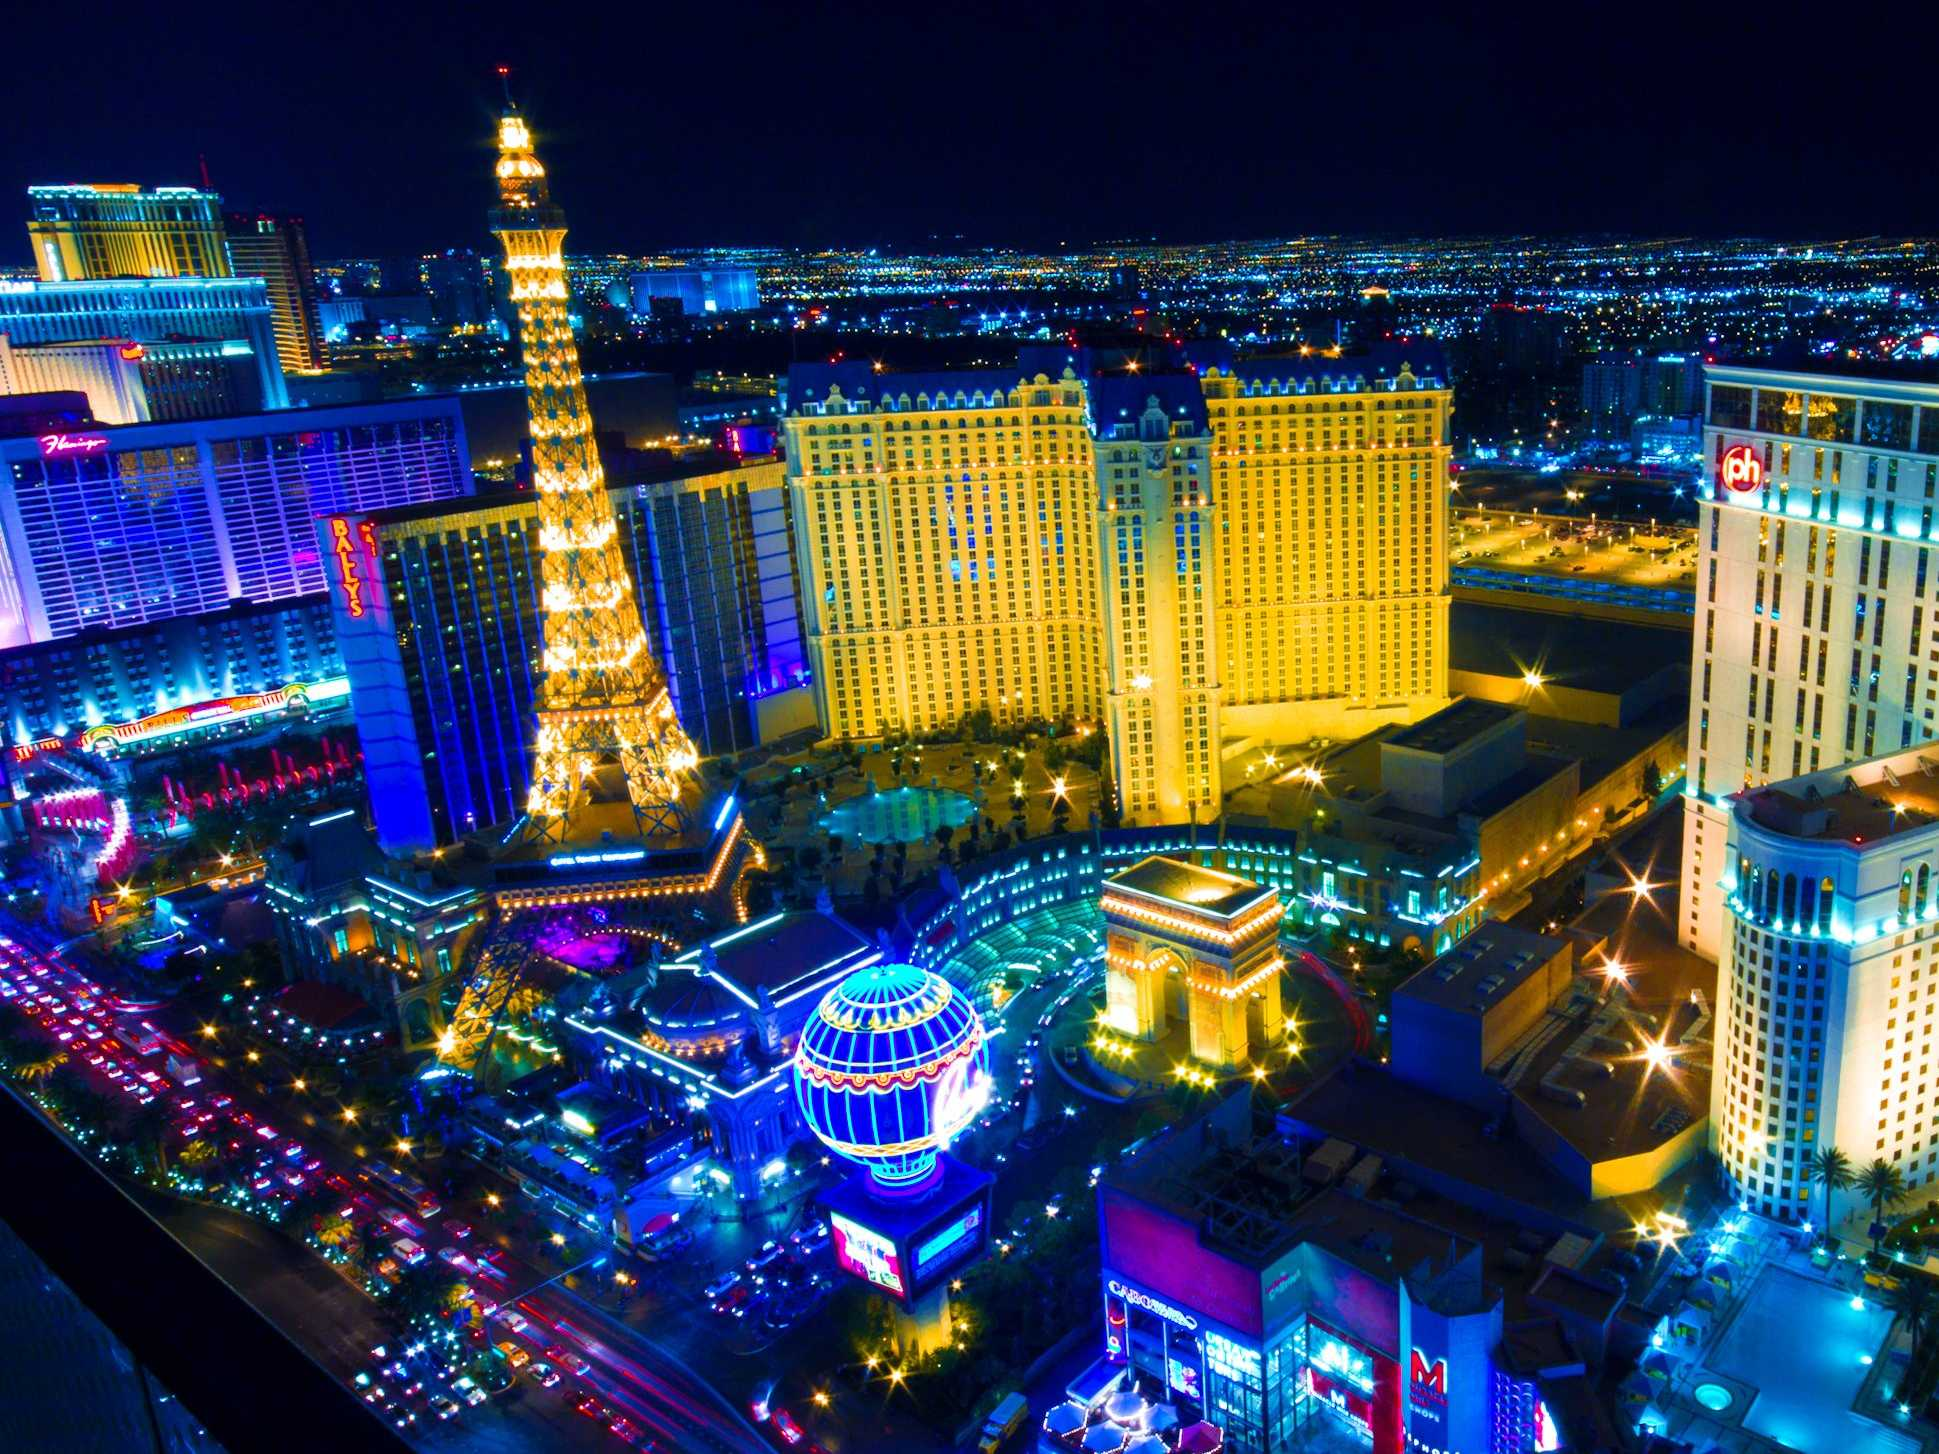 las vegas trip Las vegas tours and things to do: check out viator's reviews and photos of las vegas tours  grand canyon west rim air and ground day trip from las vegas with optional skywalk 404 reviews las vegas, nevada 6 hours  from usd $ 29999 las vegas hot air balloon ride.